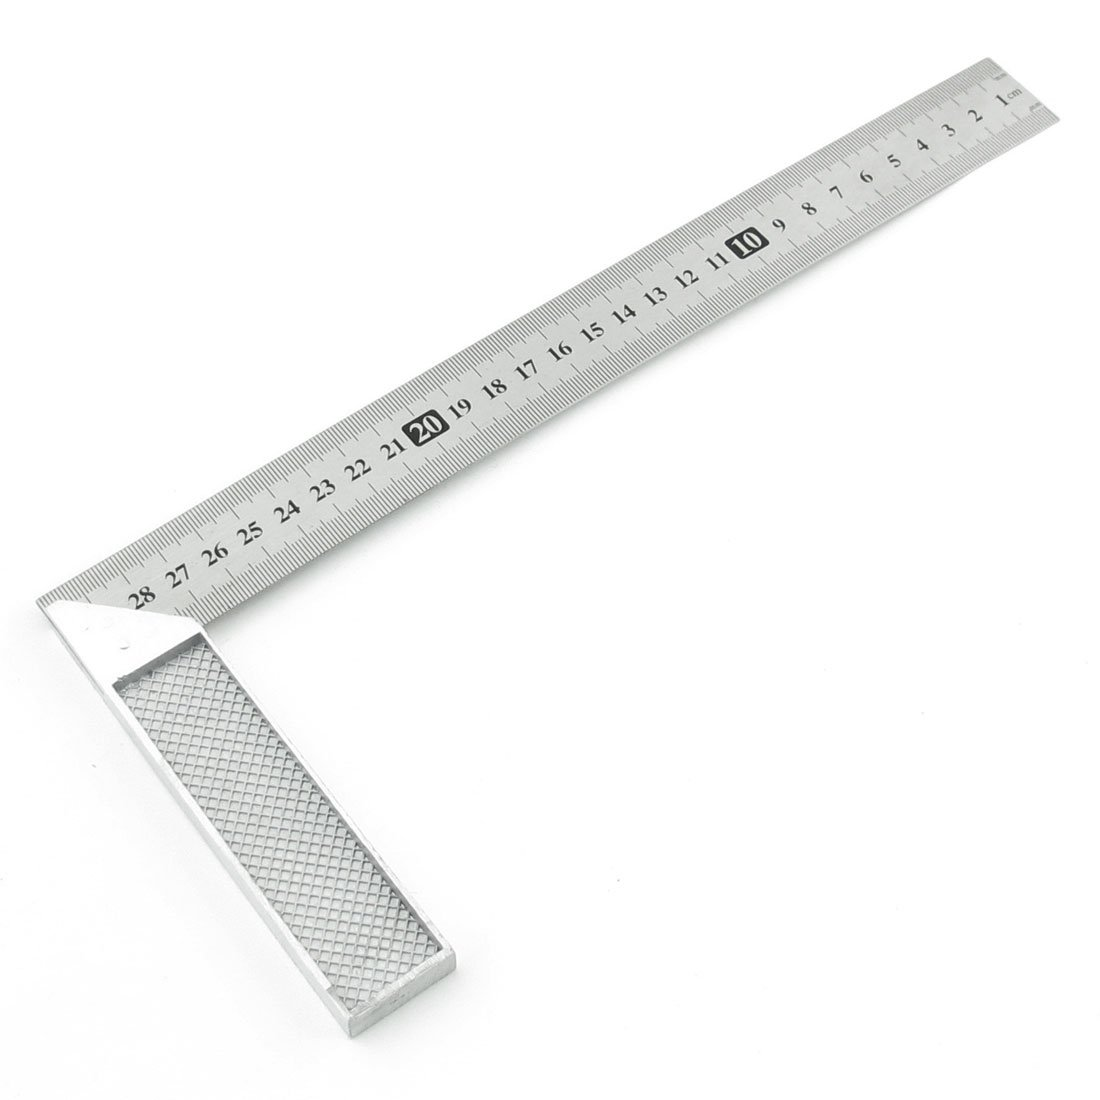 30cm Wholesale Promotion 30cm Stainless Steel Right Measuring Angle Square Ruler